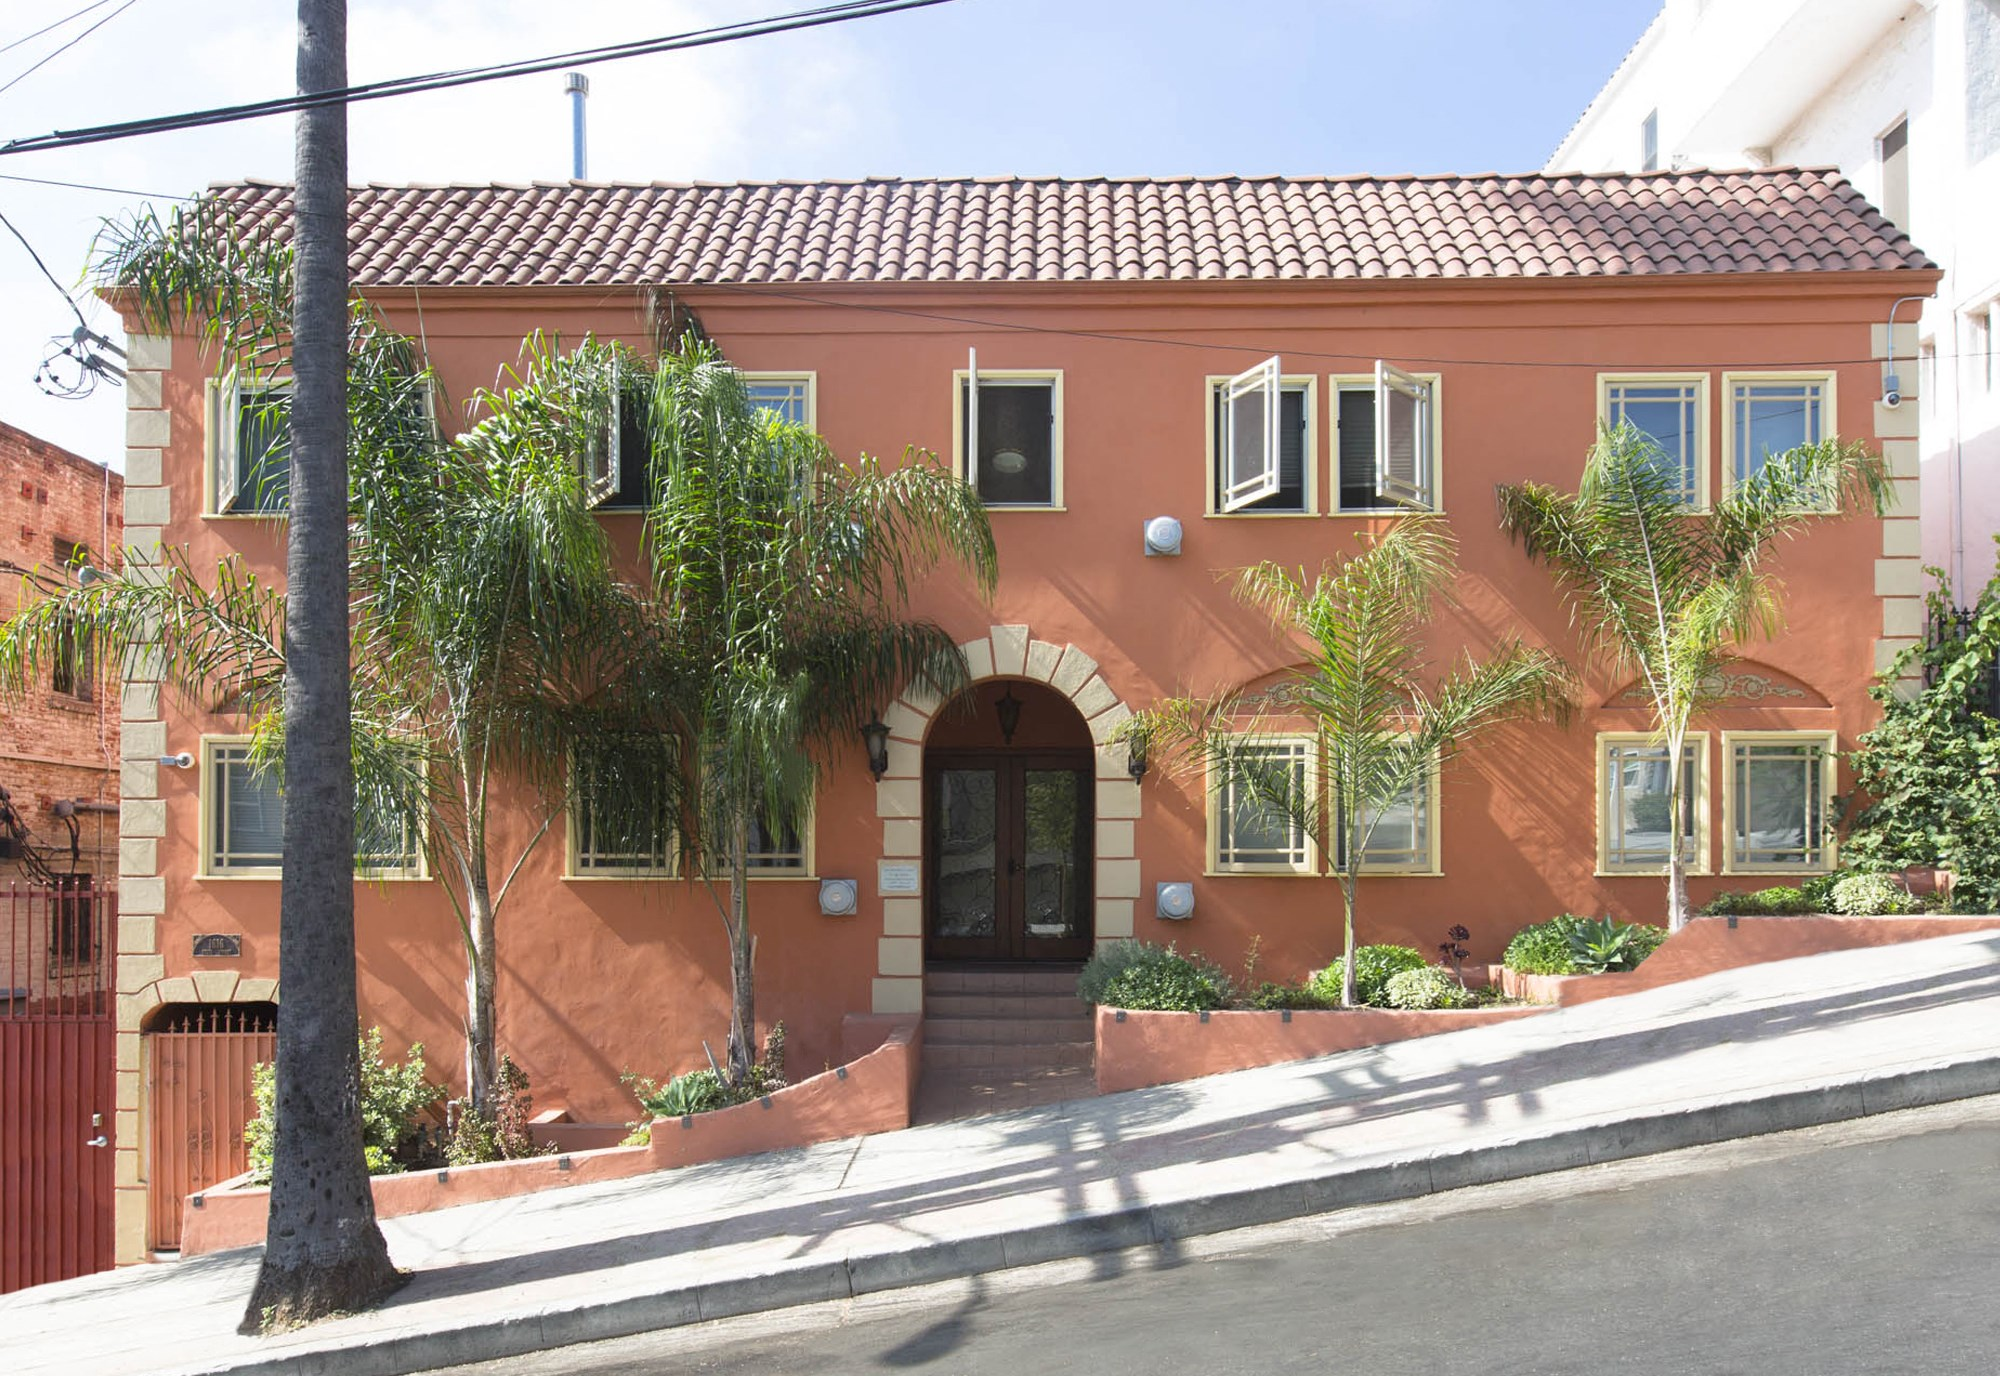 Exterior Photo of Delta Apartments, 1616 Delta Street, Los Angeles, CA 90026